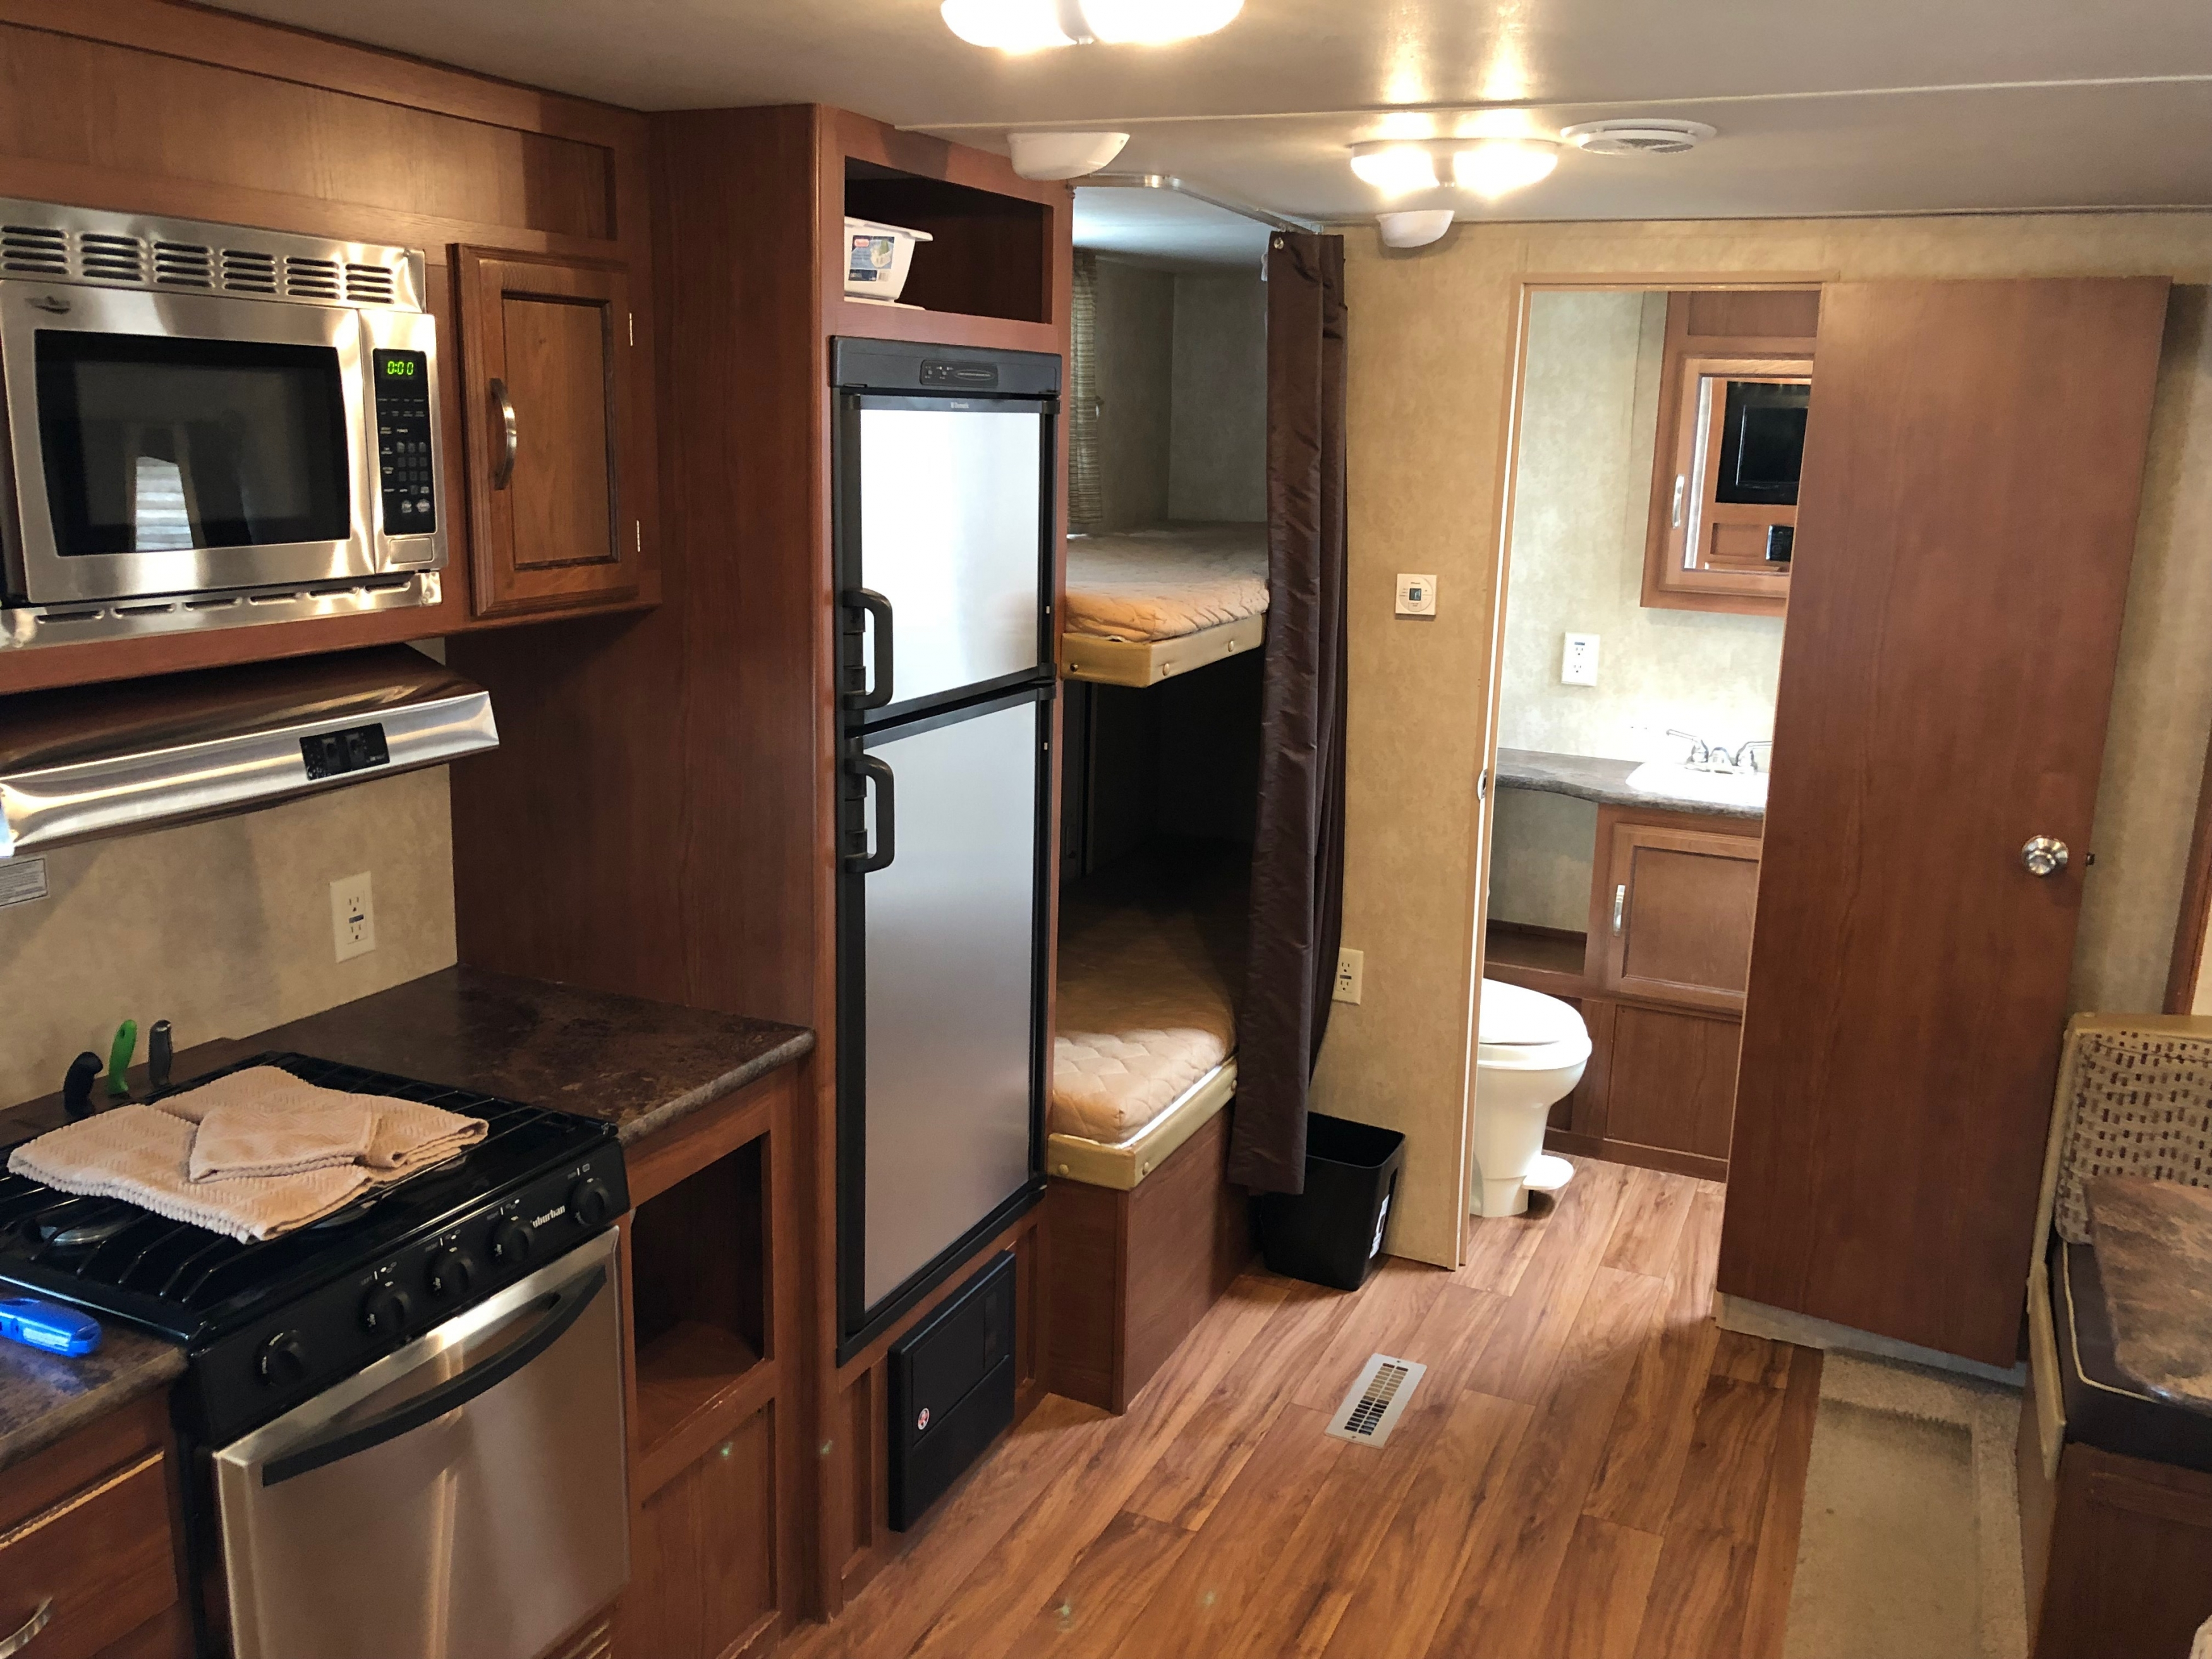 27' Wildwood Trailer with Slide Out Kitchen, Bunk Beds, & Rear View